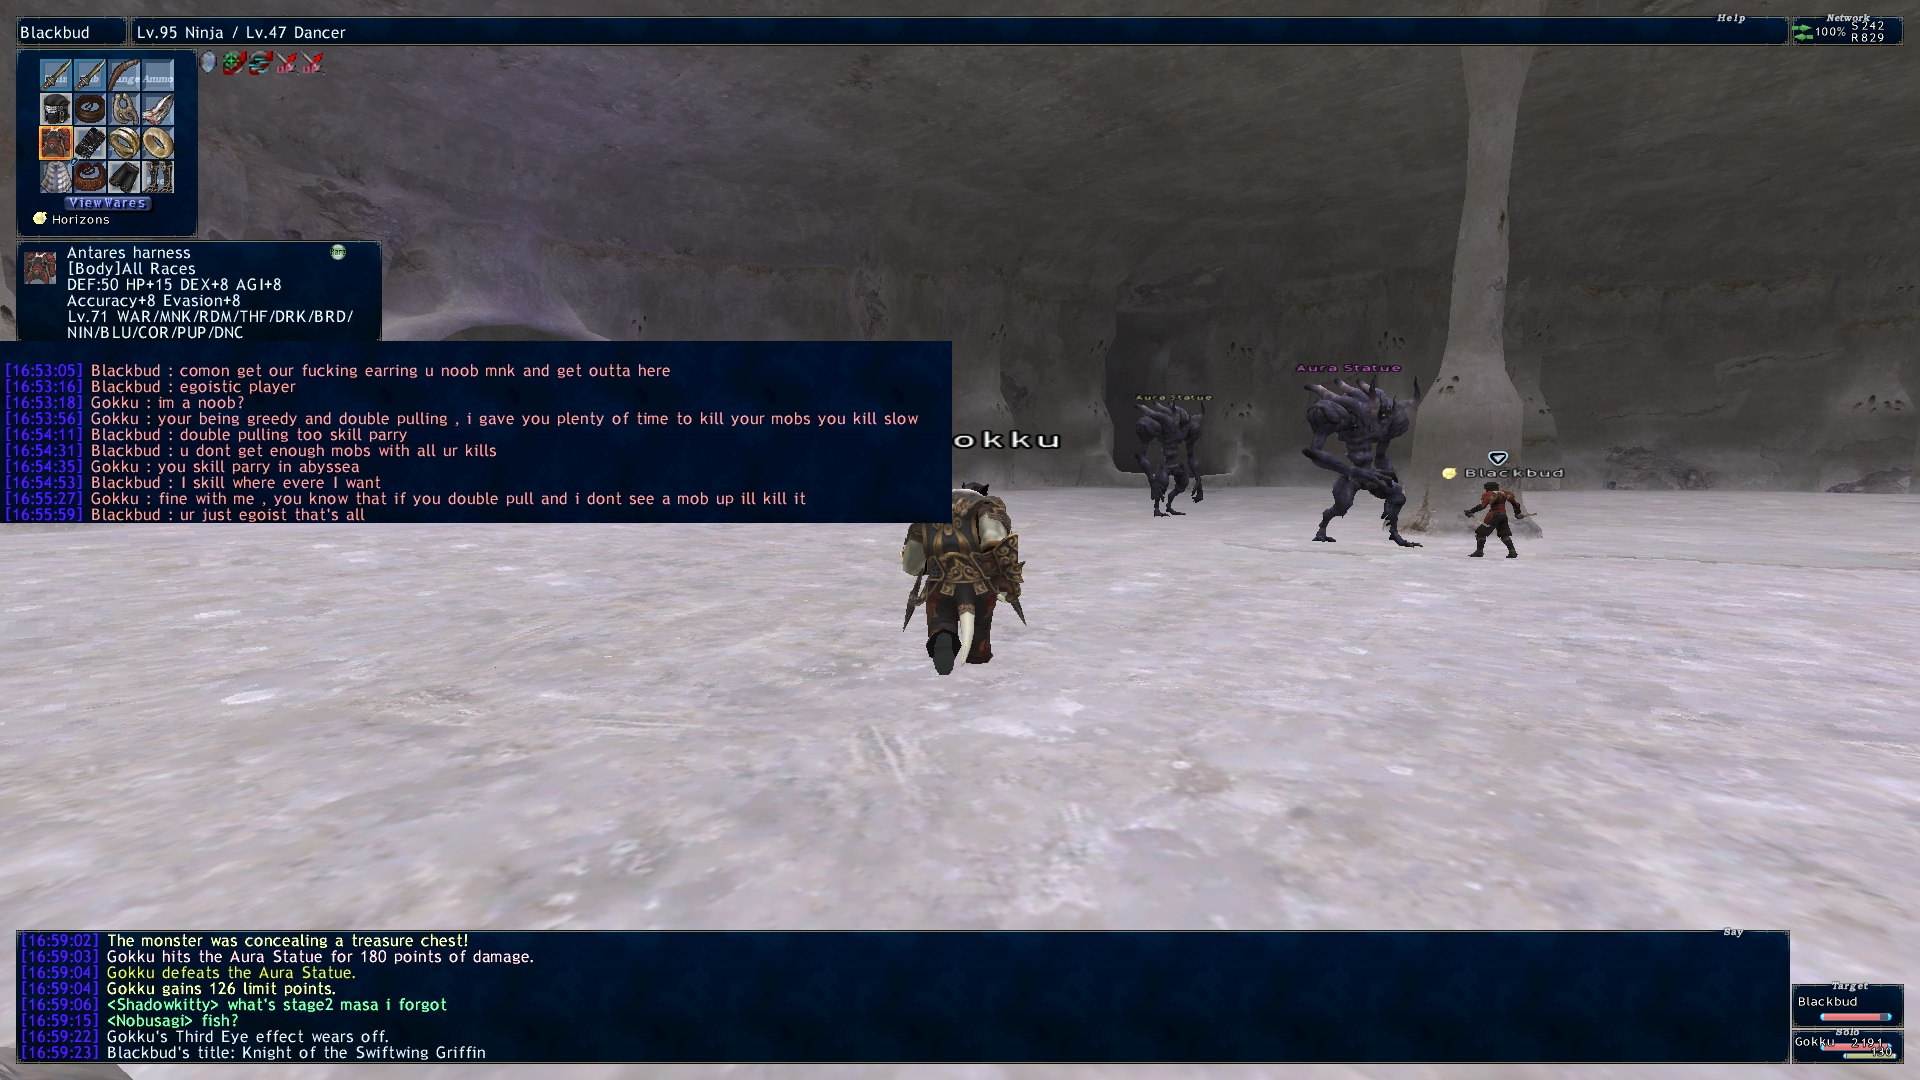 gokku ffxi your bear also thread time spend fucks unemployed paying this economy taxes rest players sucking would without cock addictions german full about they money their commenting plays into wouldnt were social angry xxiii player guys rude being trying impress decade almost gimpconfusedwtf jobs enough well playing started dont